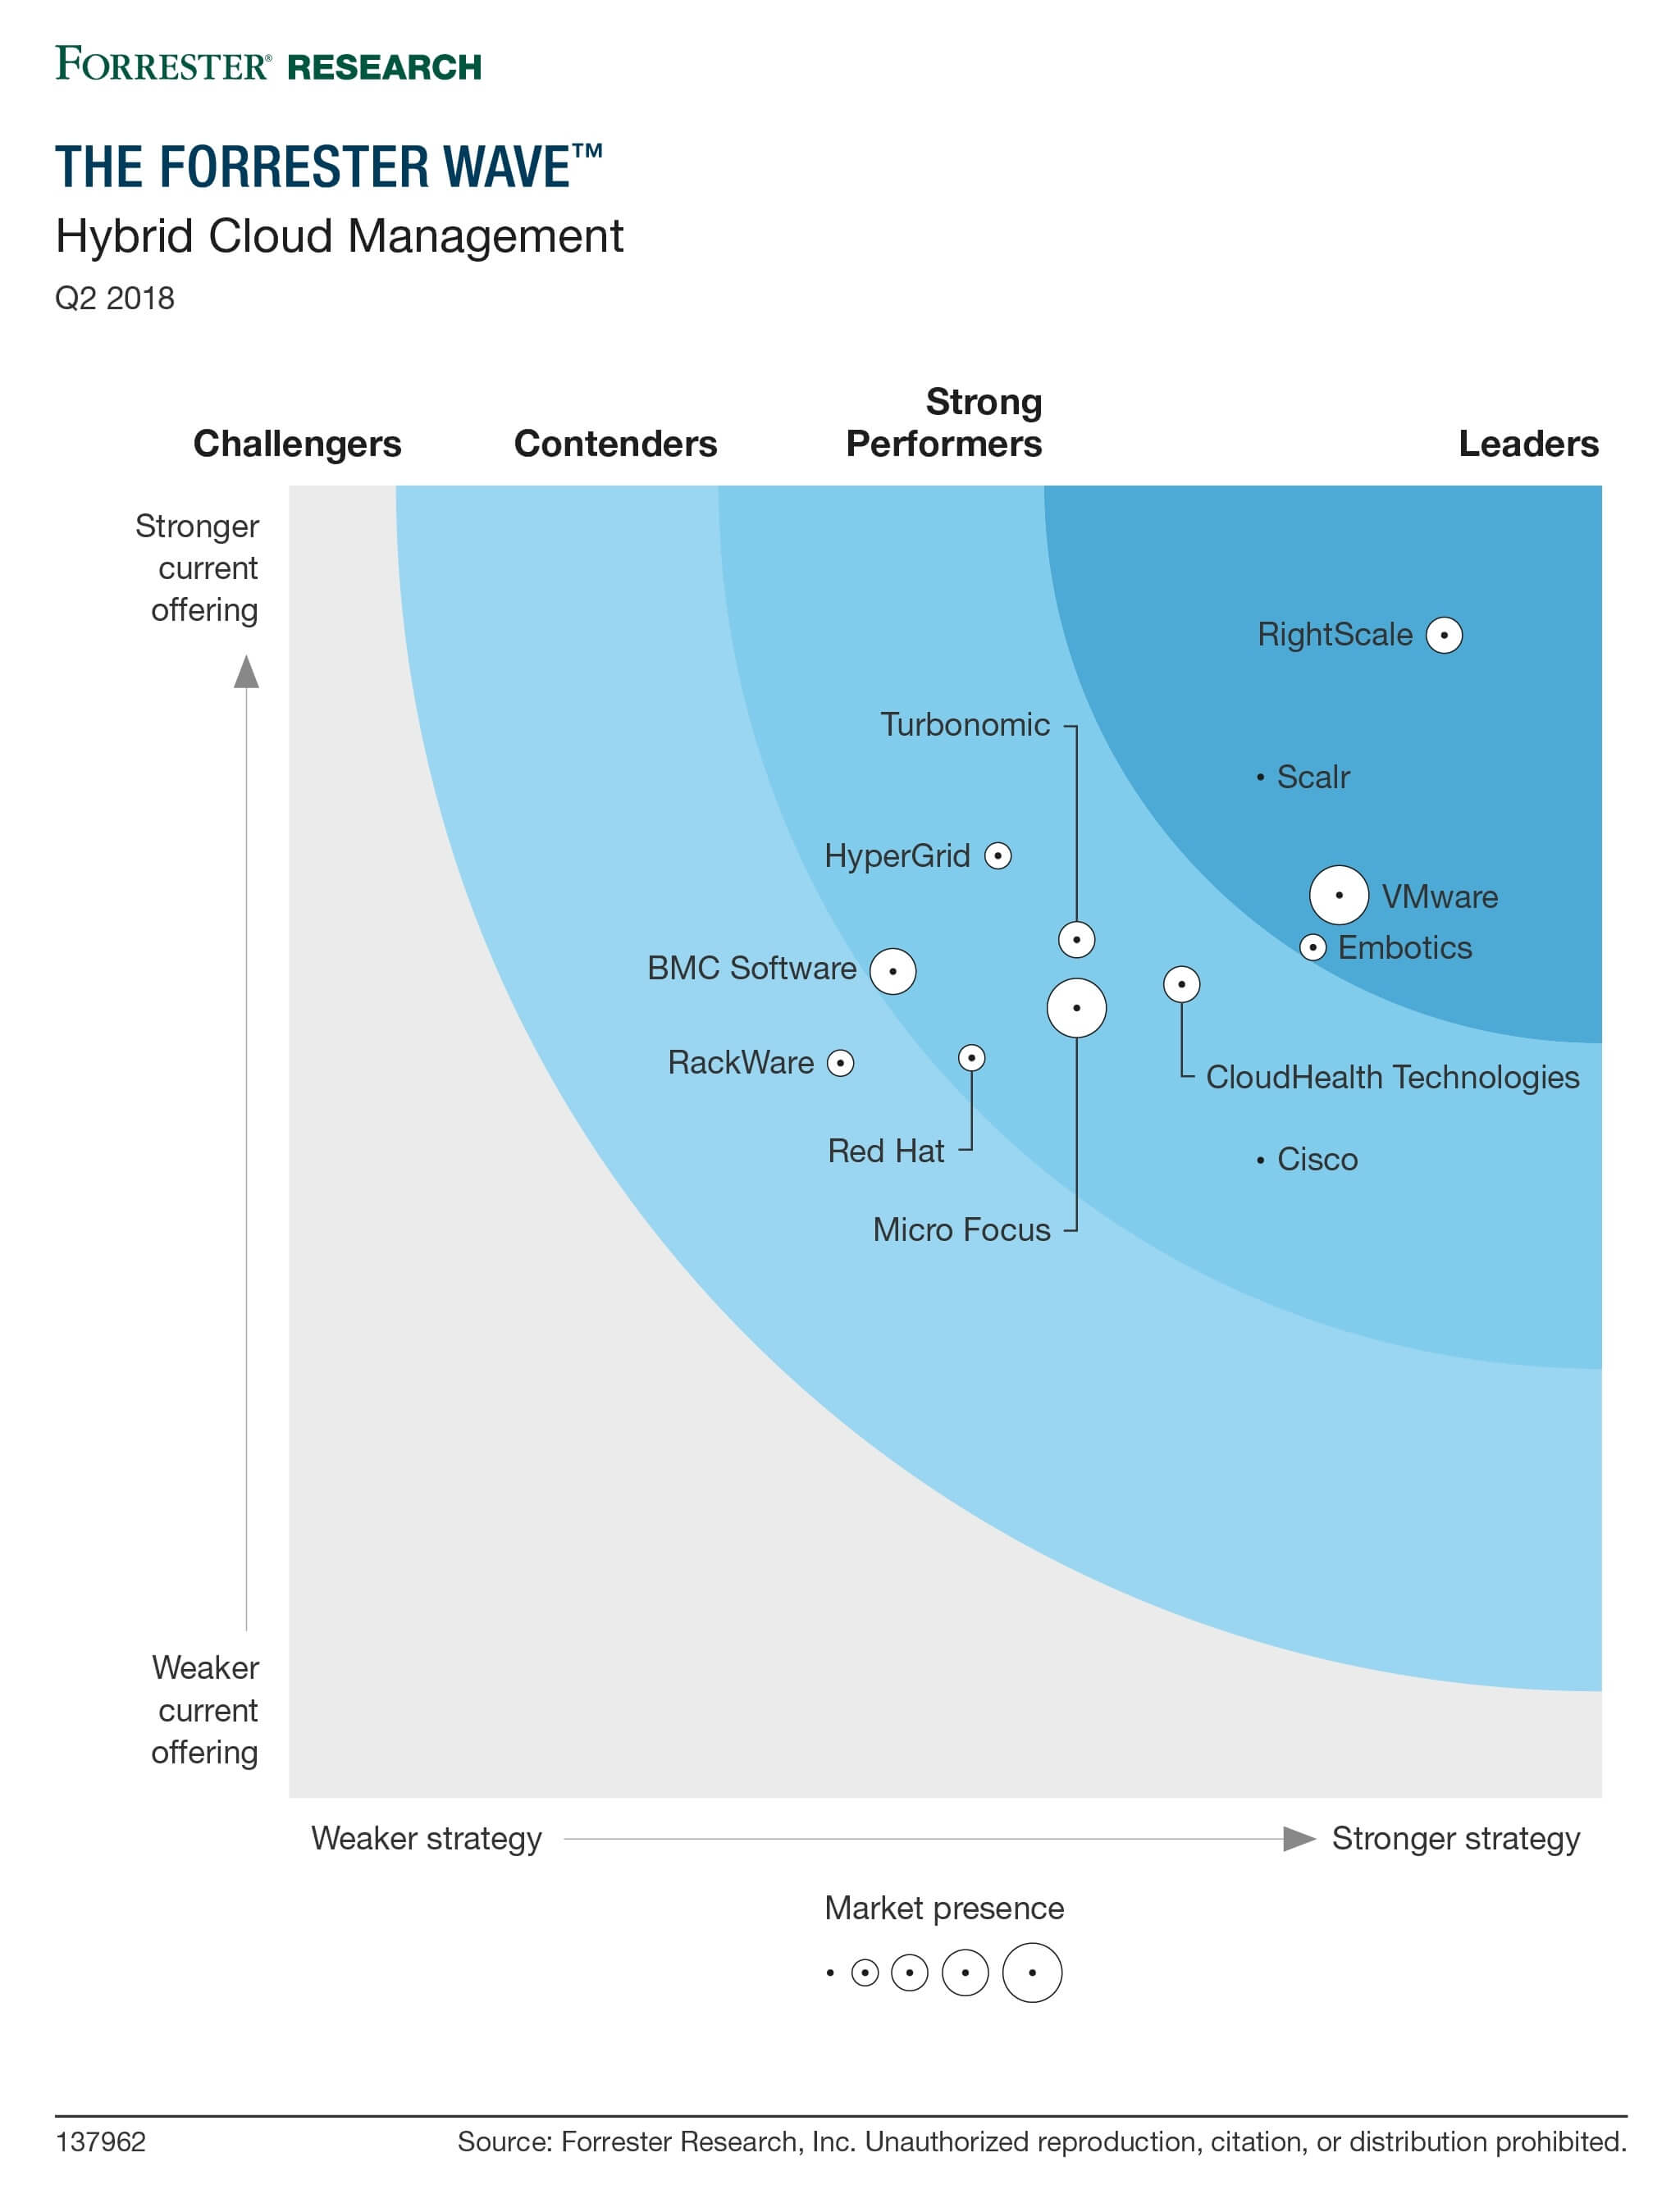 The Forrester Wave: Hybrid Cloud Management